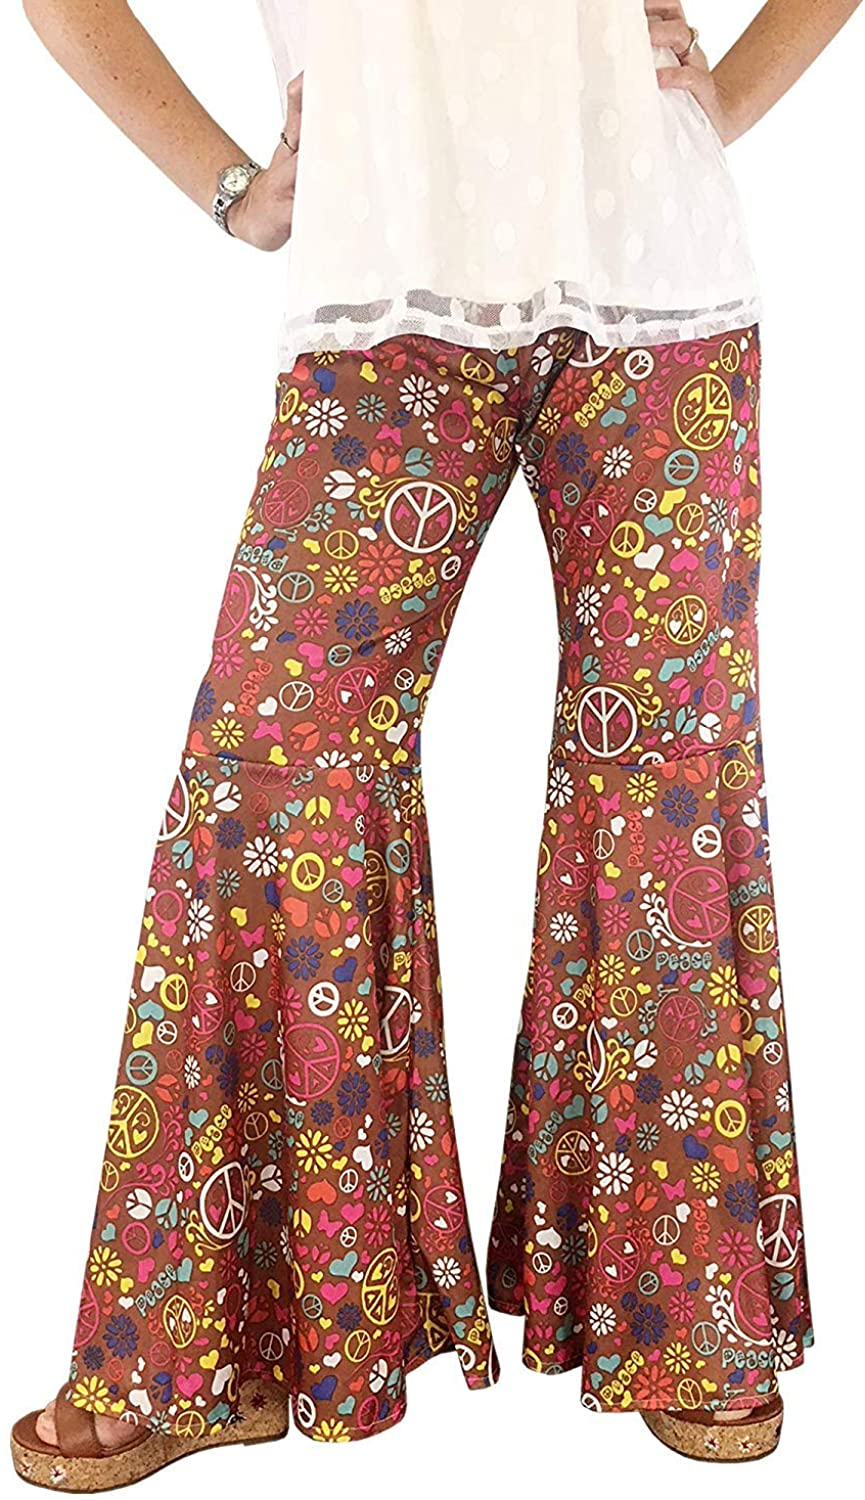 60s Pants, Jeans, Hippie, Flares, Jumpsuits 70s Clothes for Women Groovy Hippie Bell Bottom Flared Costume Pant Peace Sign  AT vintagedancer.com